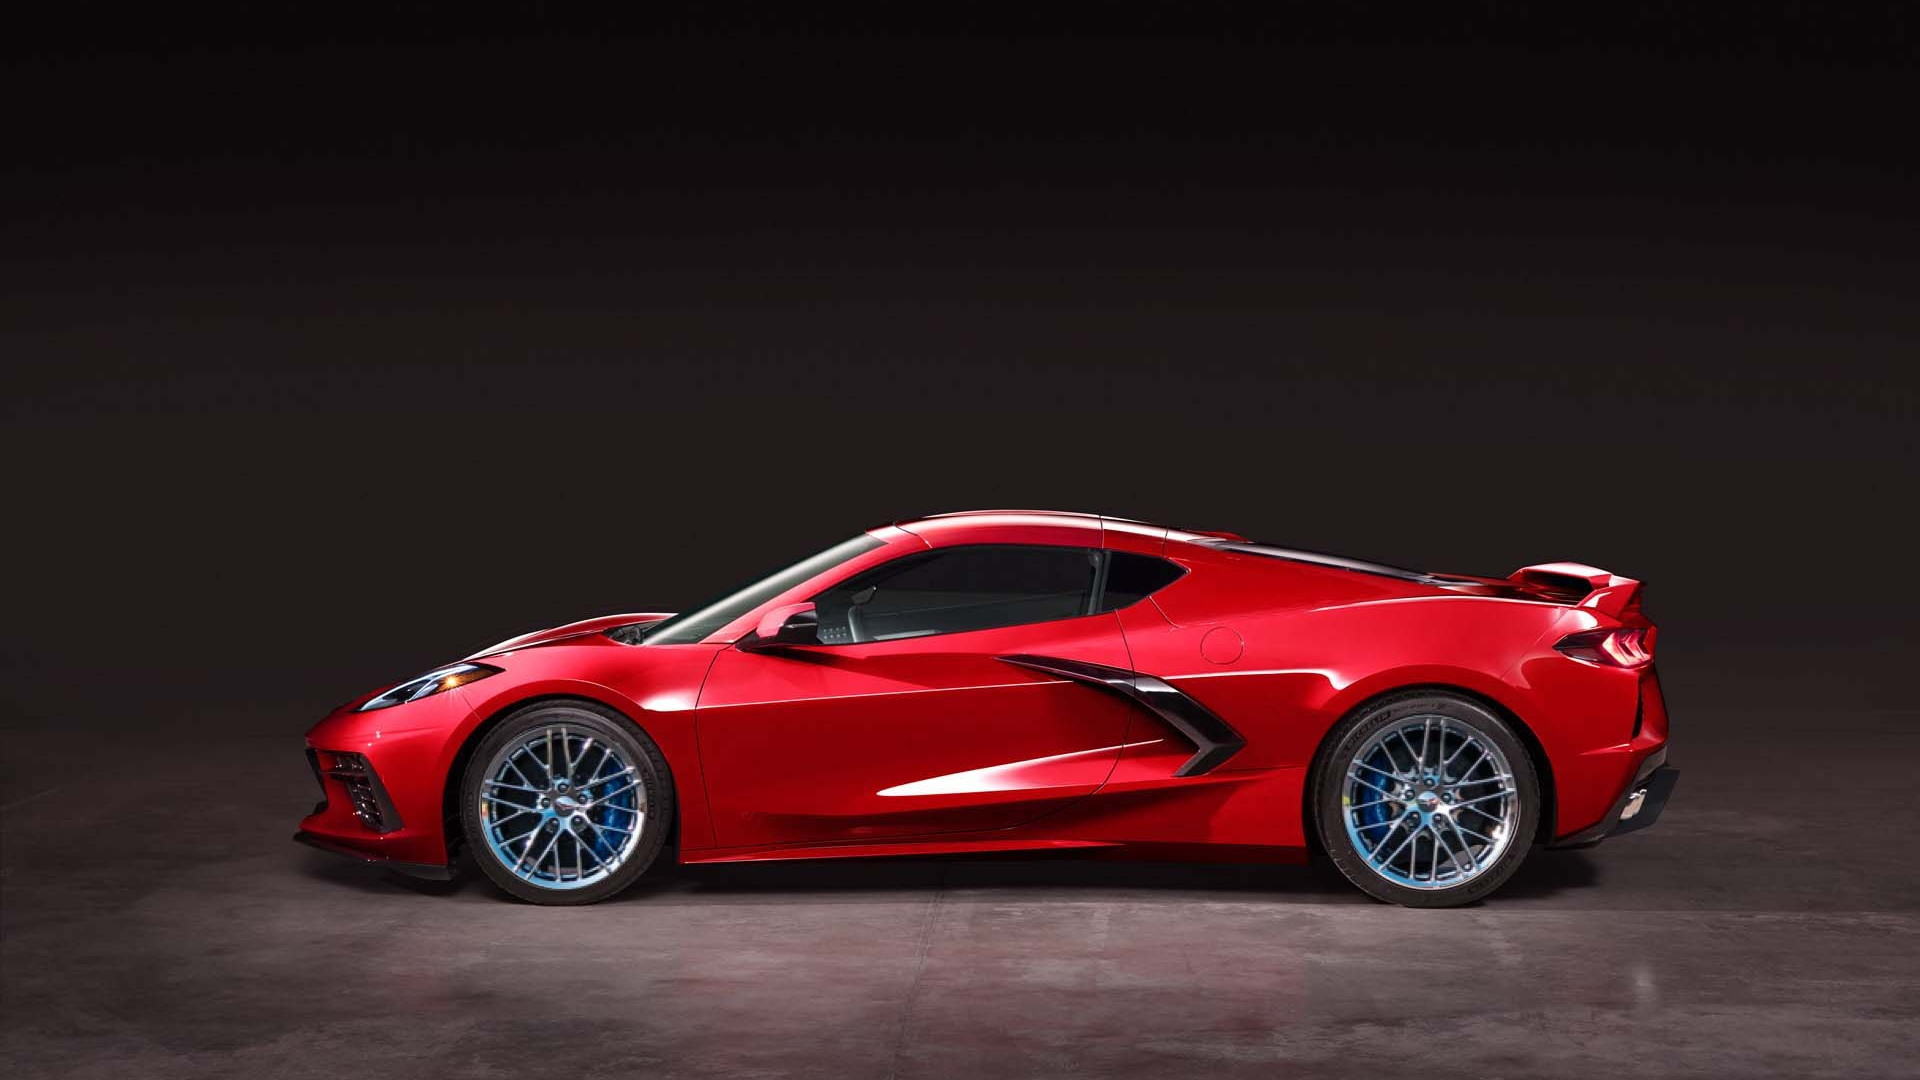 2020 Chevrolet Corvette Stingray with C6 ZR1 wheels